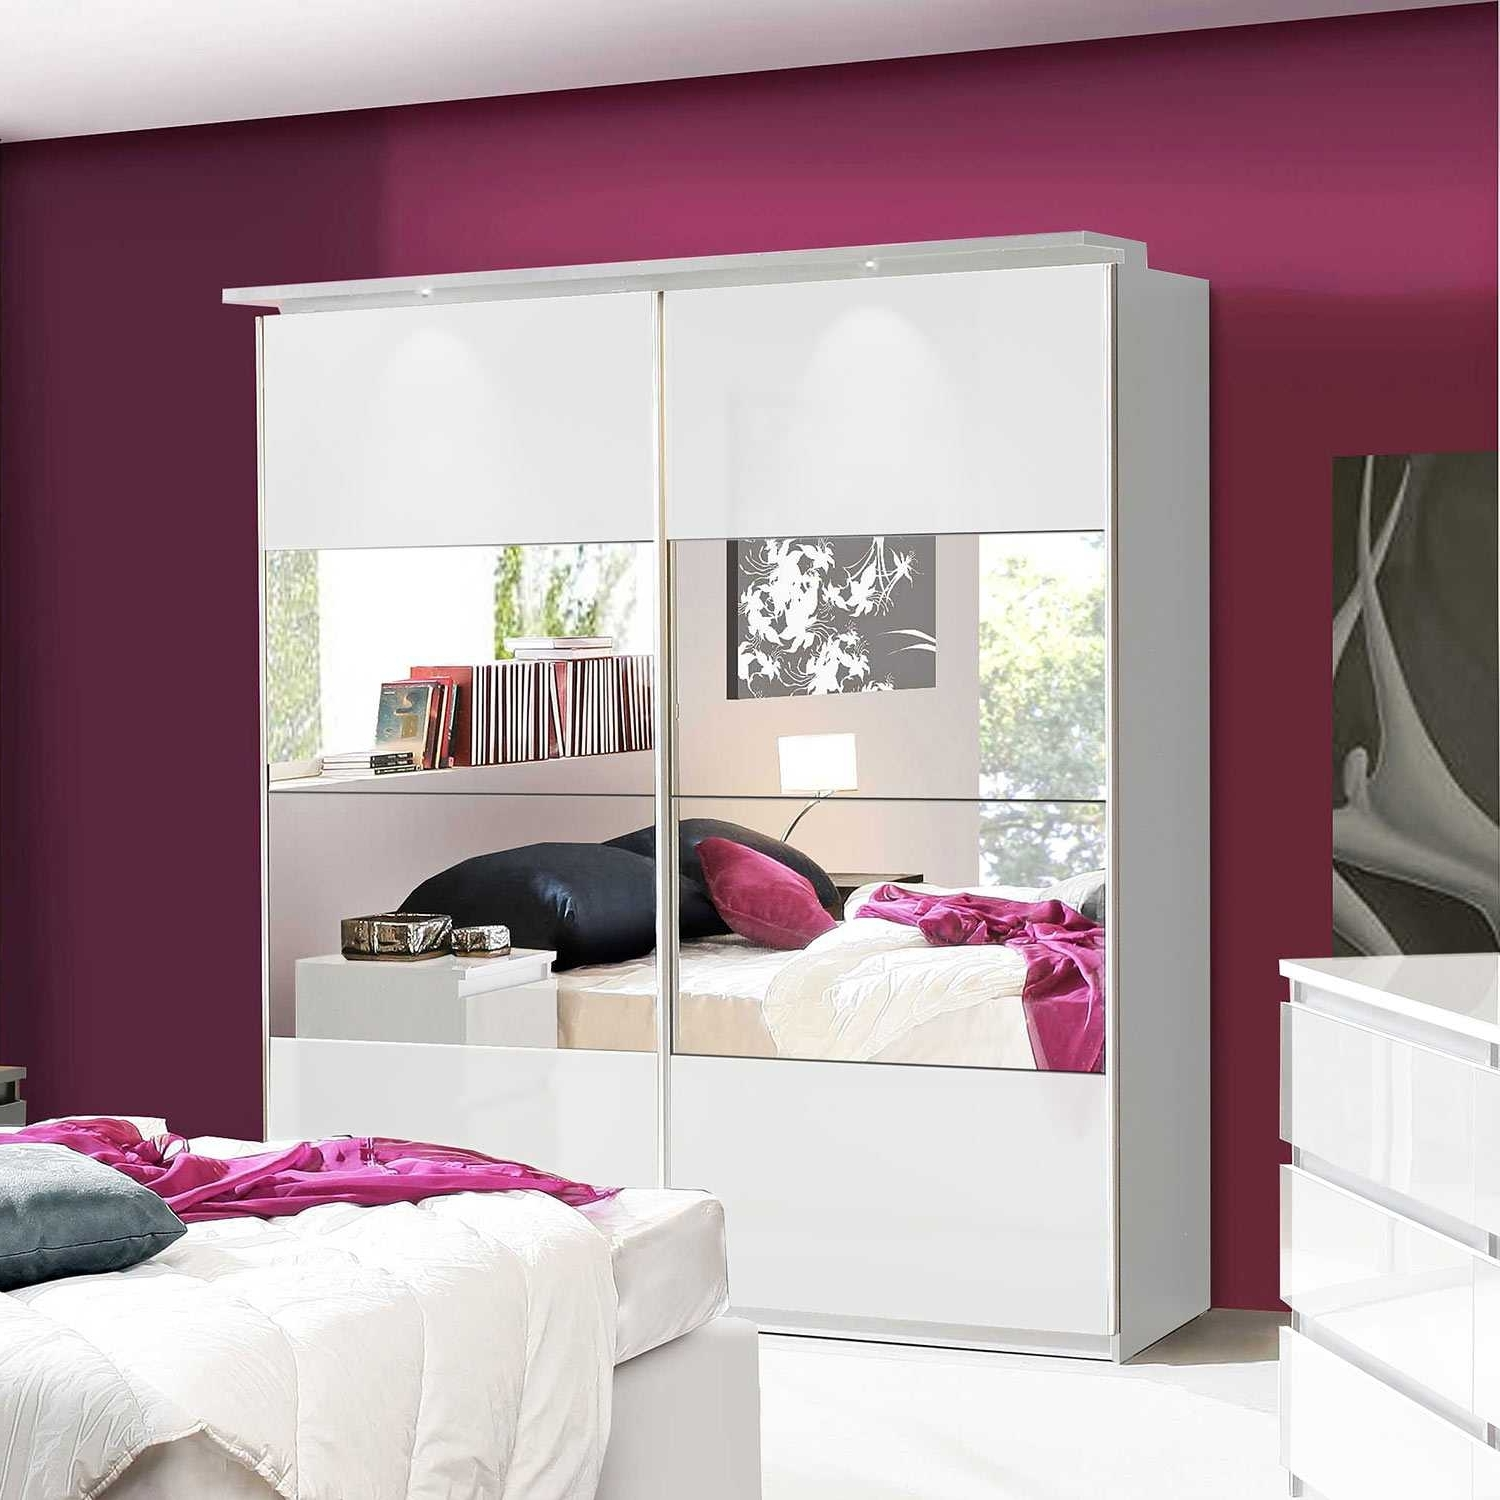 [%Large And Small Sliding Wardrobes – Up To 50% Off At Furniturefactor Pertaining To Latest Tall White Gloss Wardrobes|Tall White Gloss Wardrobes Throughout Newest Large And Small Sliding Wardrobes – Up To 50% Off At Furniturefactor|Latest Tall White Gloss Wardrobes Throughout Large And Small Sliding Wardrobes – Up To 50% Off At Furniturefactor|Most Recent Large And Small Sliding Wardrobes – Up To 50% Off At Furniturefactor With Regard To Tall White Gloss Wardrobes%] (View 1 of 15)